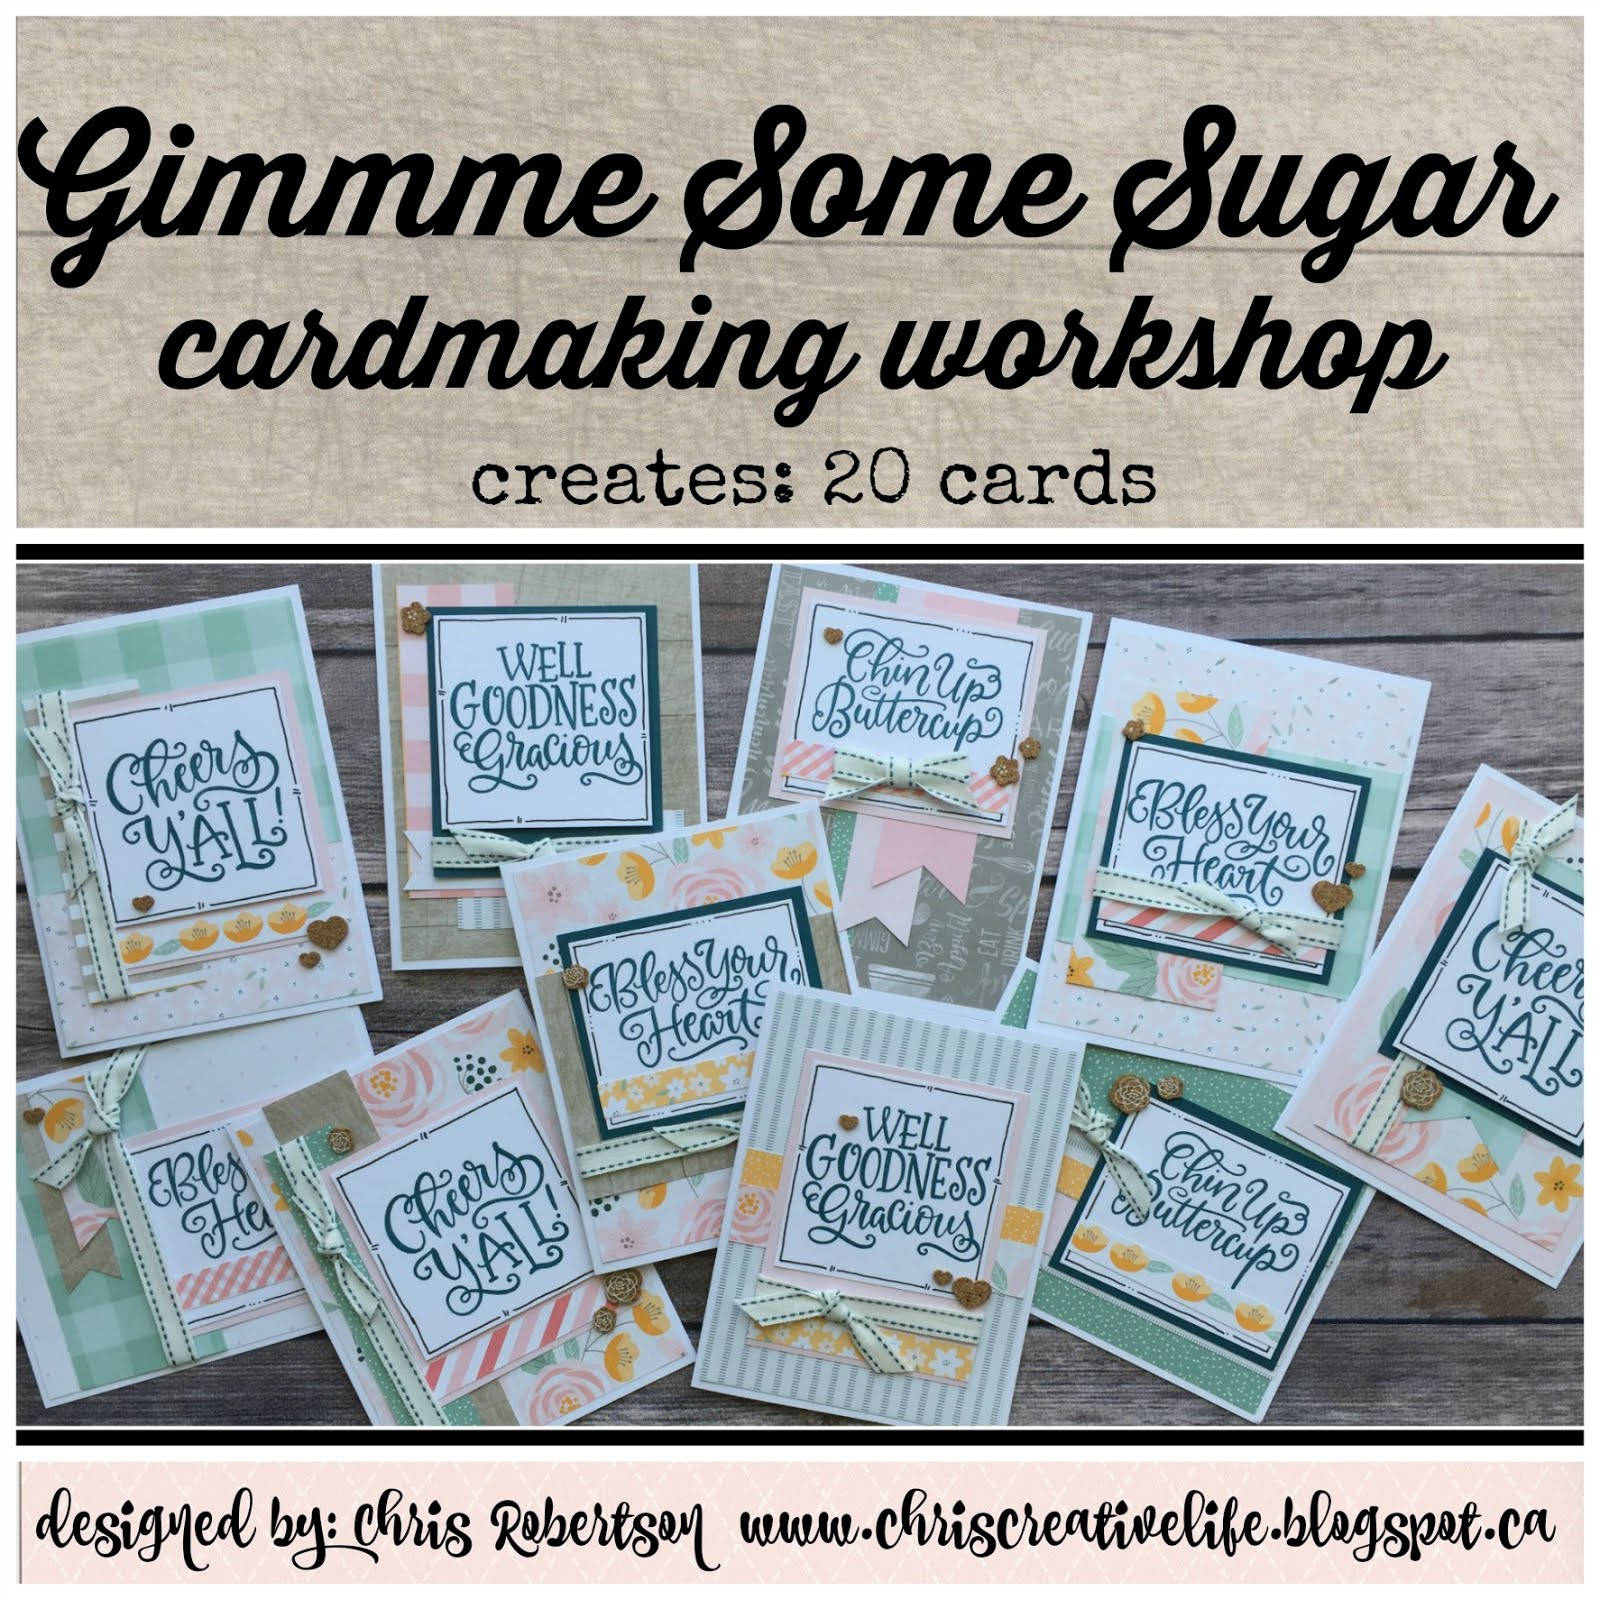 Gimme Some Sugar Scrapbooking Workshop